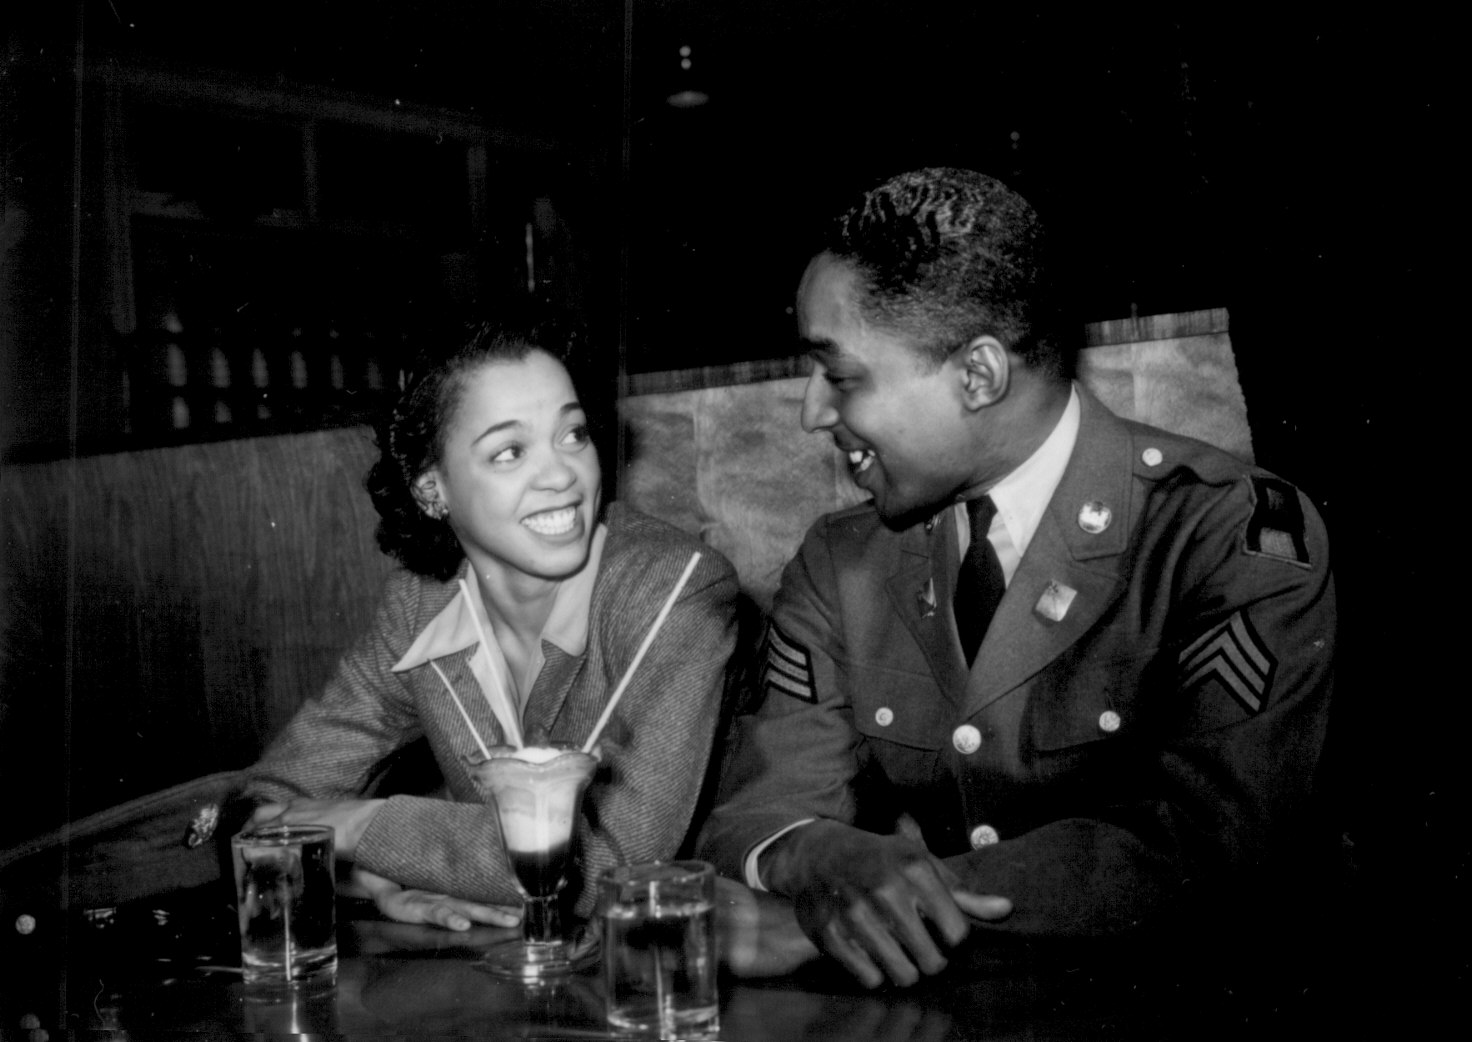 http://www.archives.gov/research/african-americans/ww2-pictures/images/african-americans-wwii-206